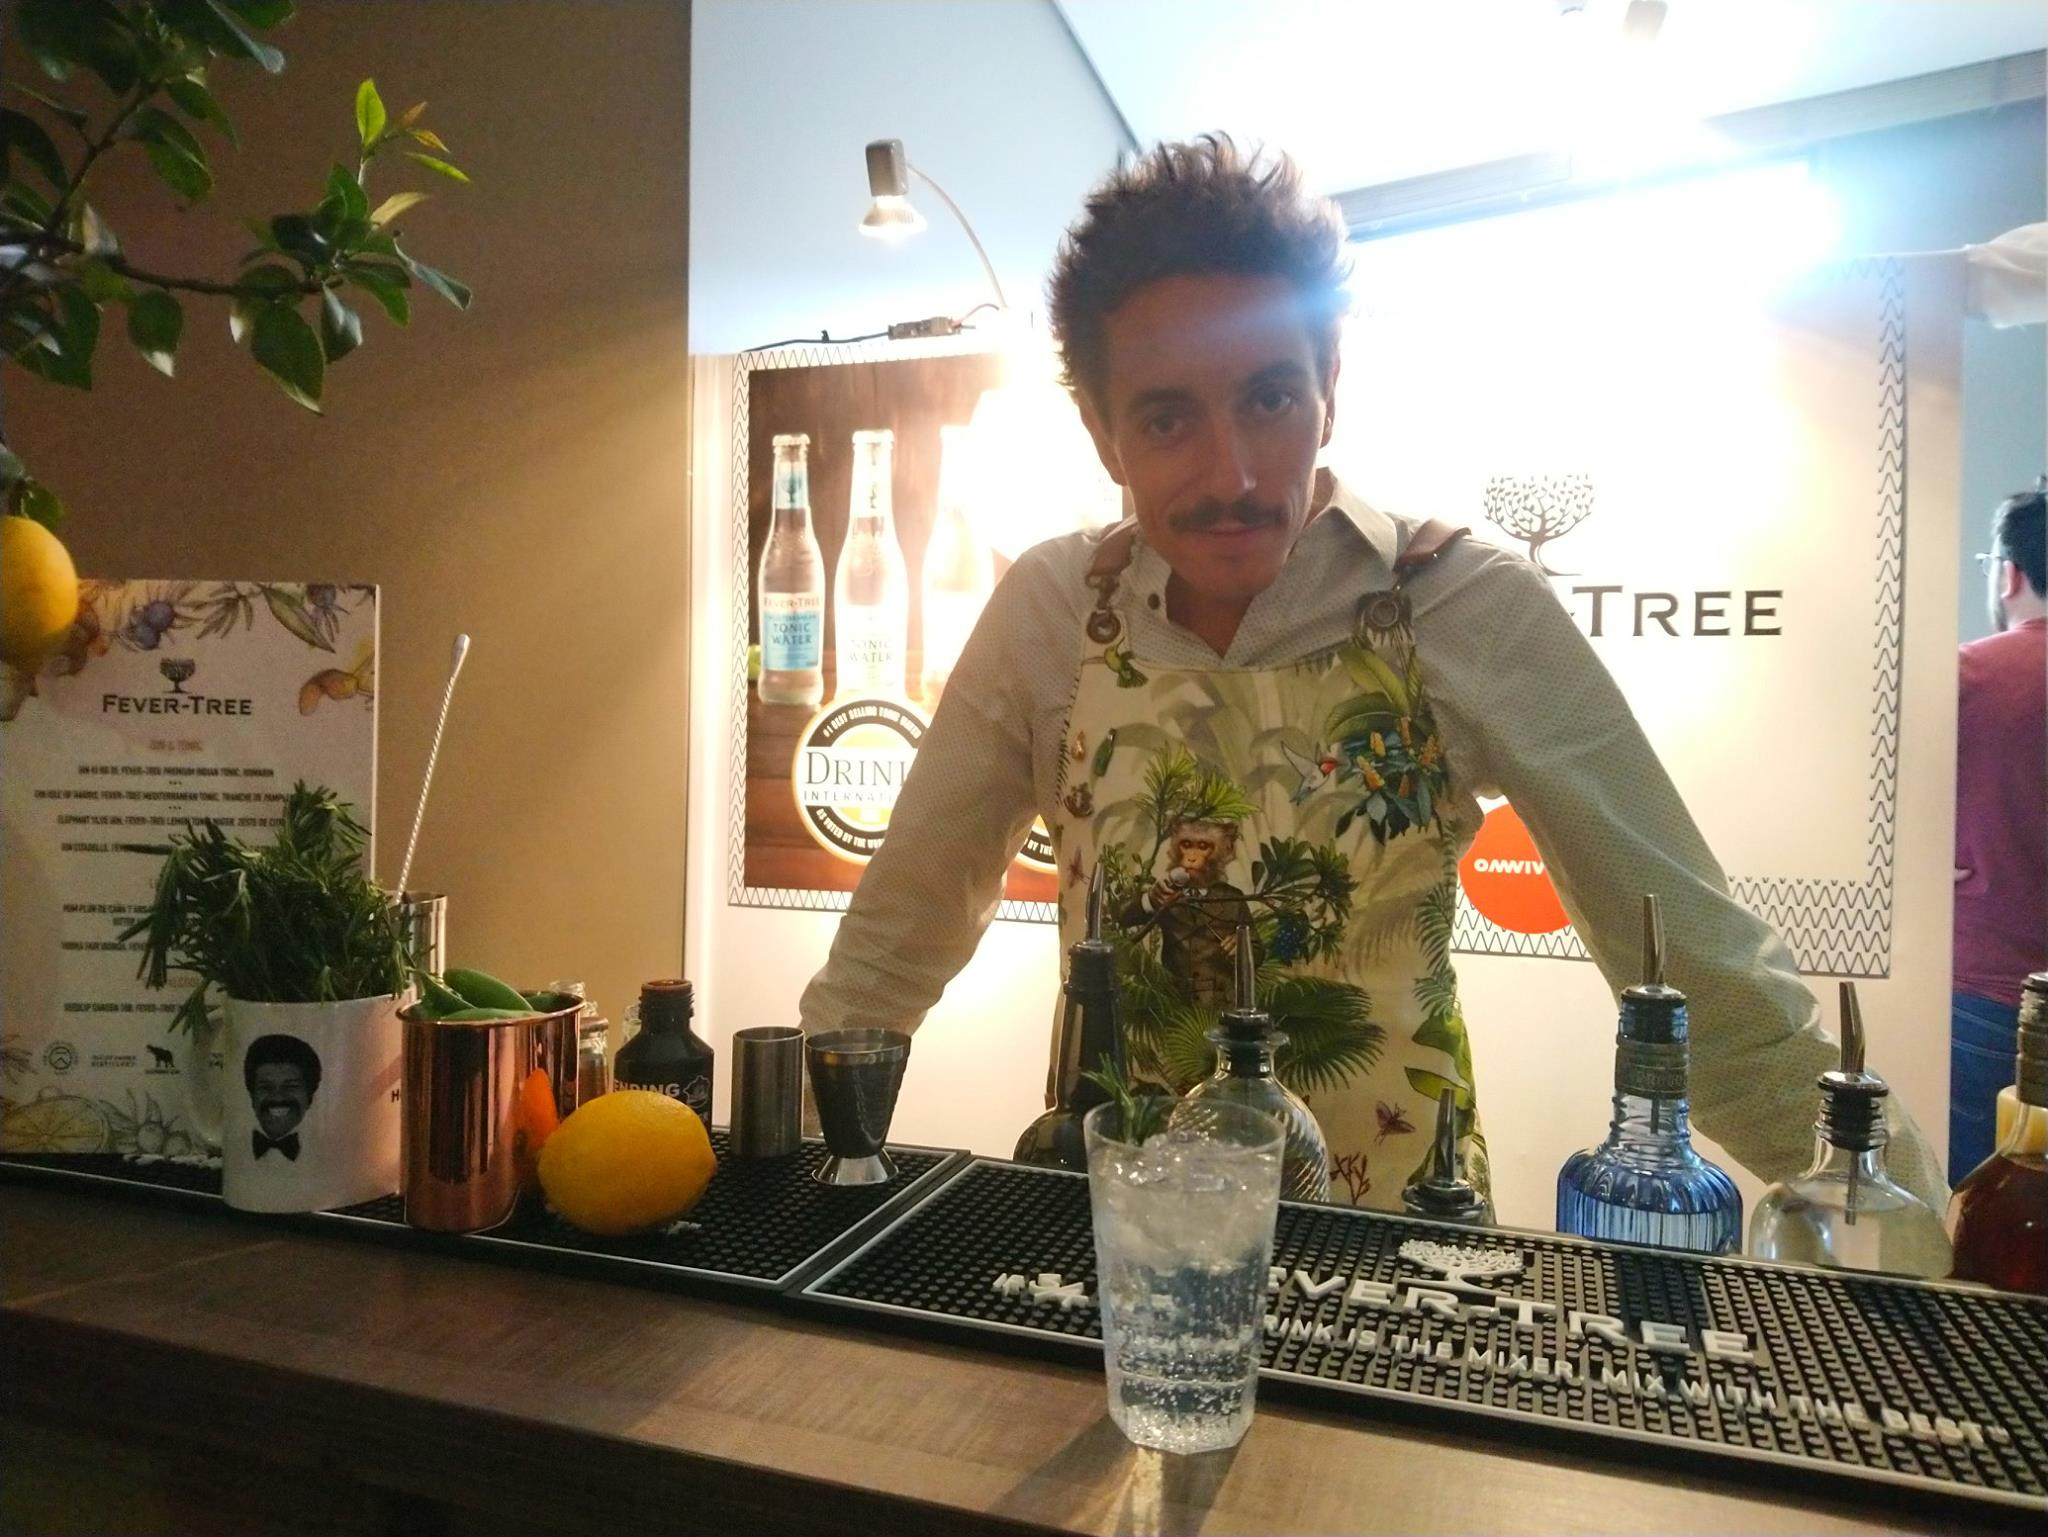 Cédric Moreau (Bootleggers) prépare un cocktail à base de Fever Tree